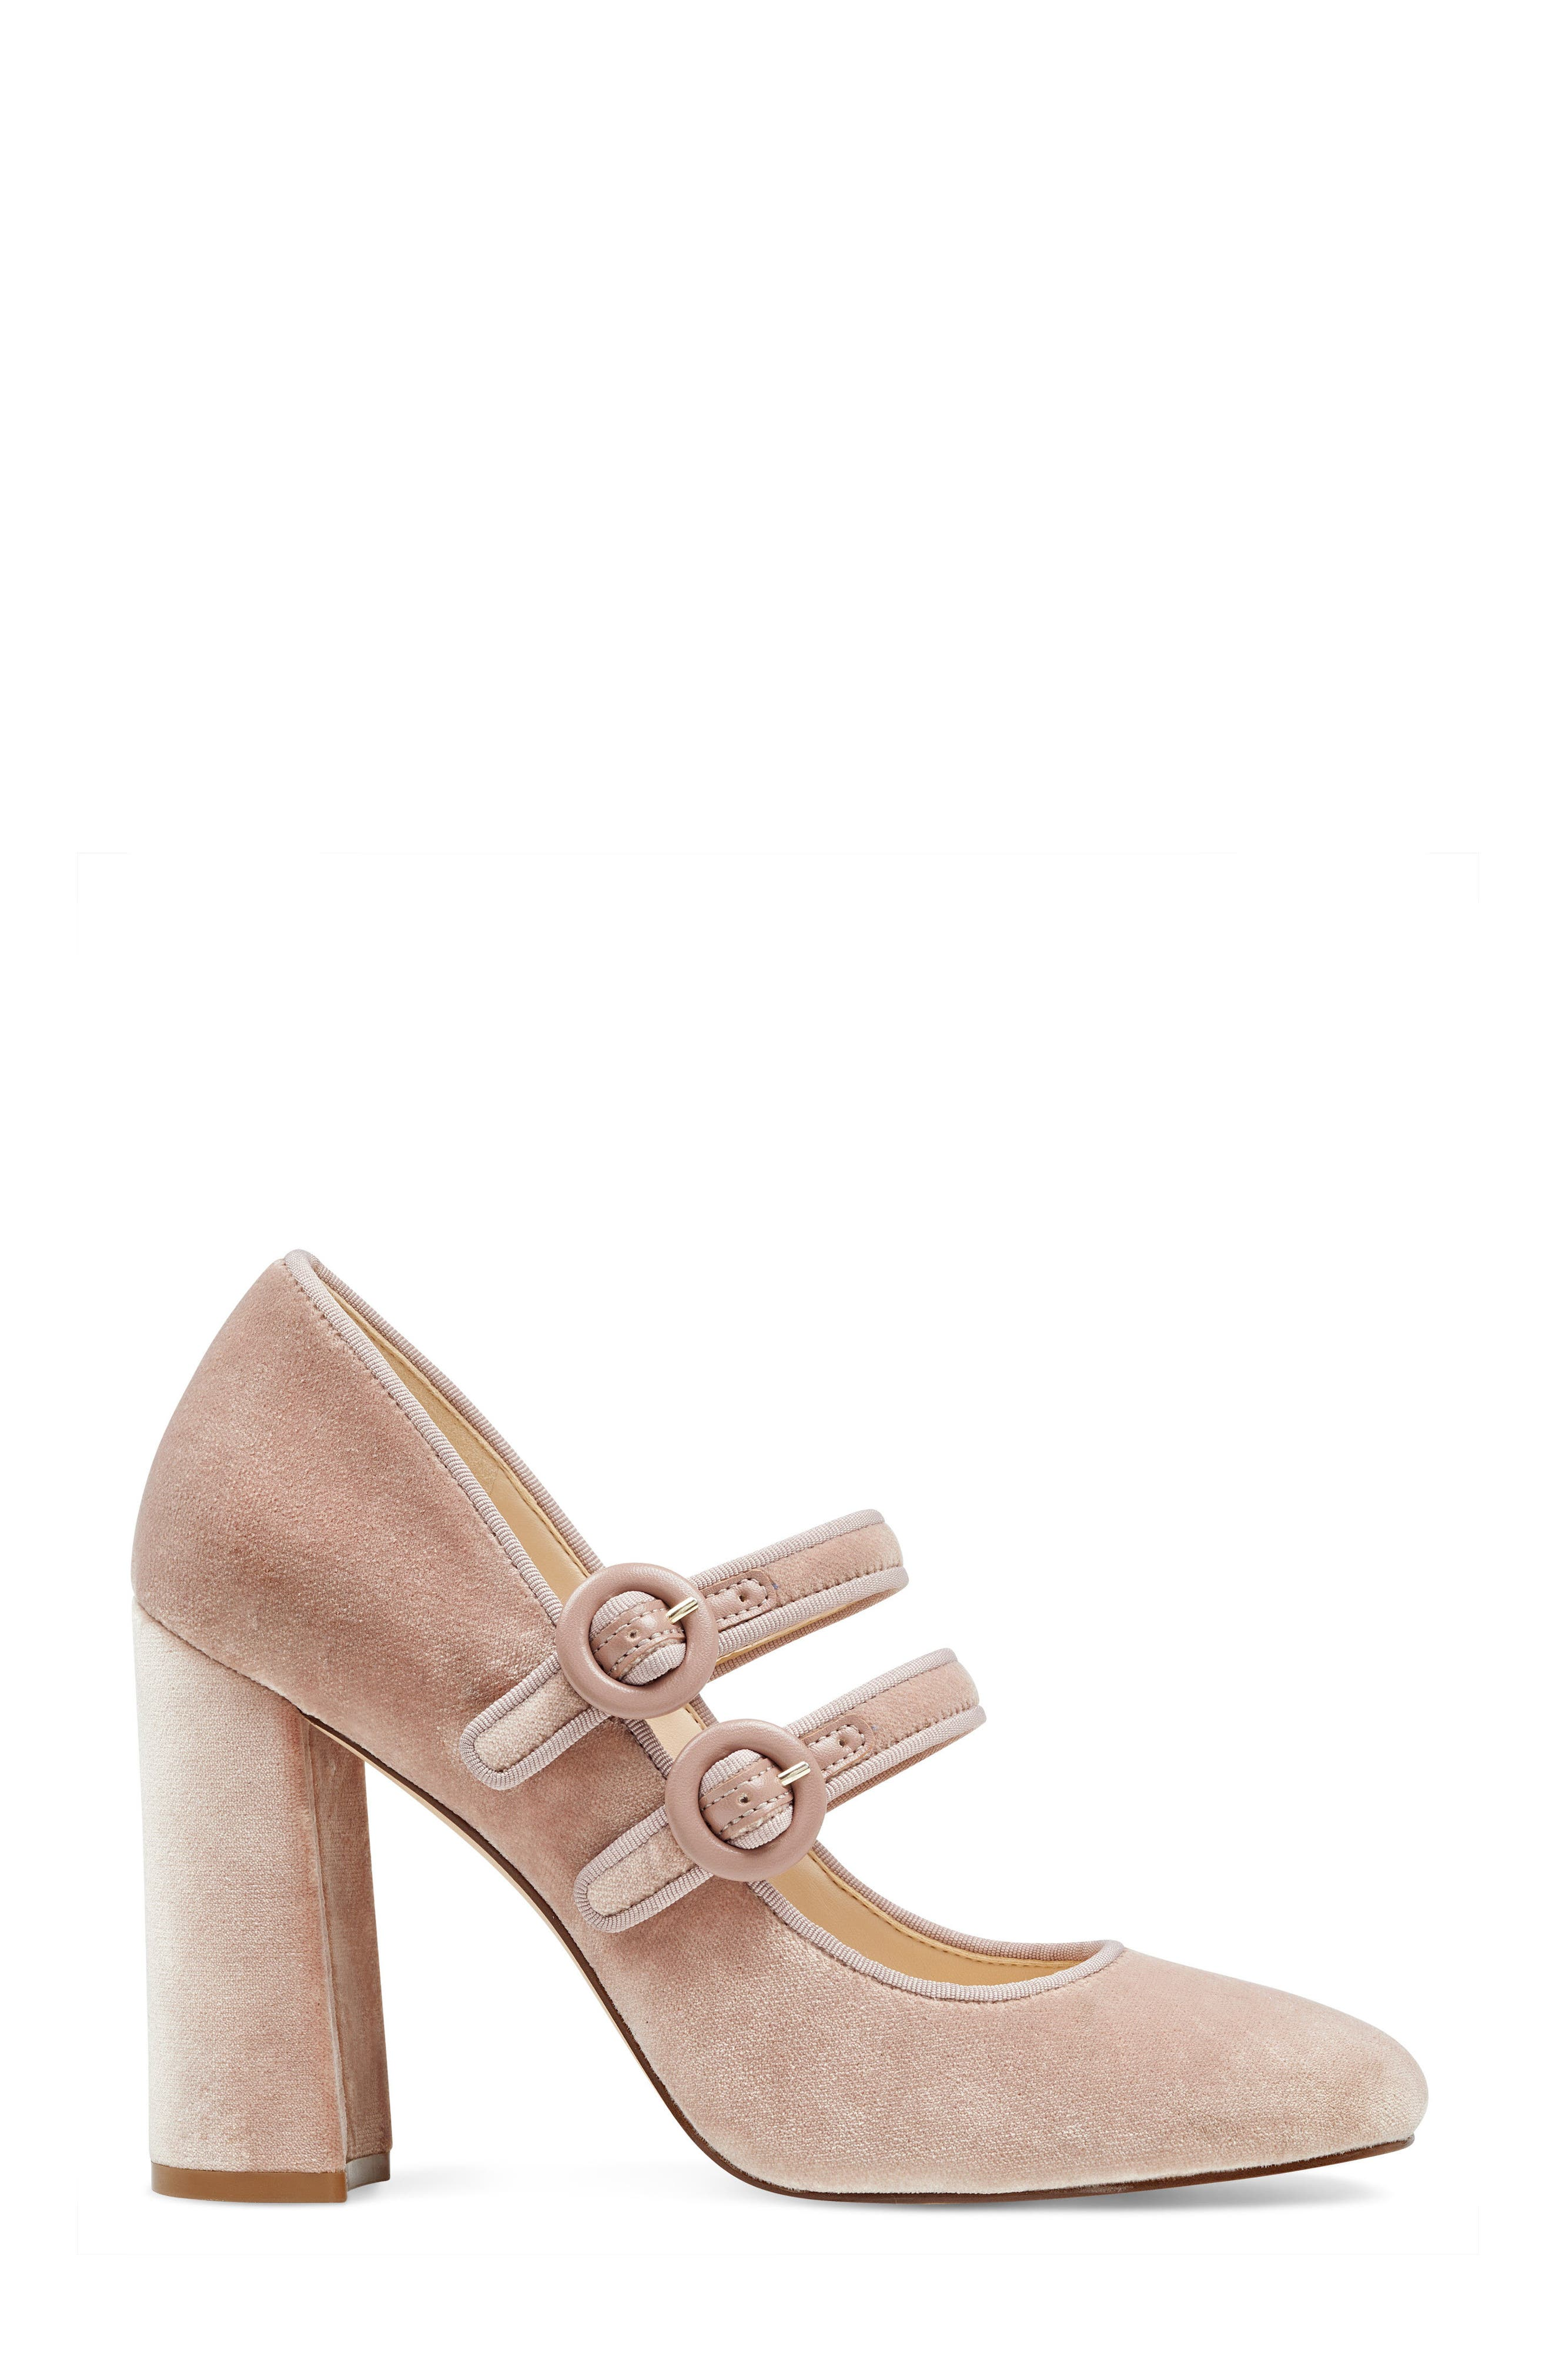 Dabney Double Strap Mary Jane Pump,                             Alternate thumbnail 11, color,